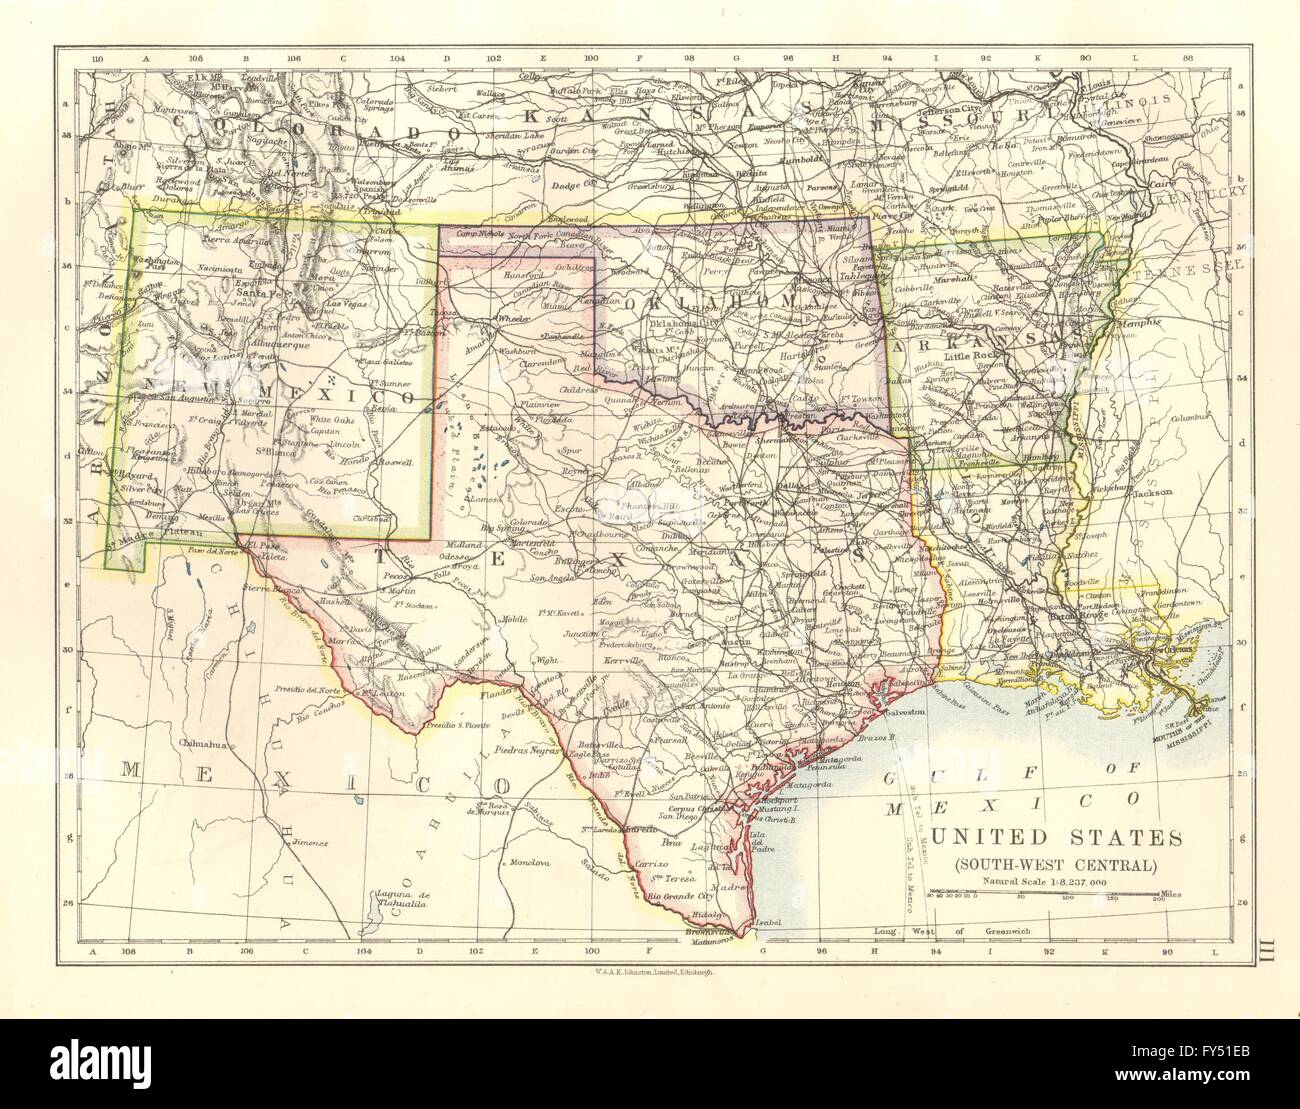 usa south centraltexas oklahoma arkansas new mexico louisiana 1920 old map